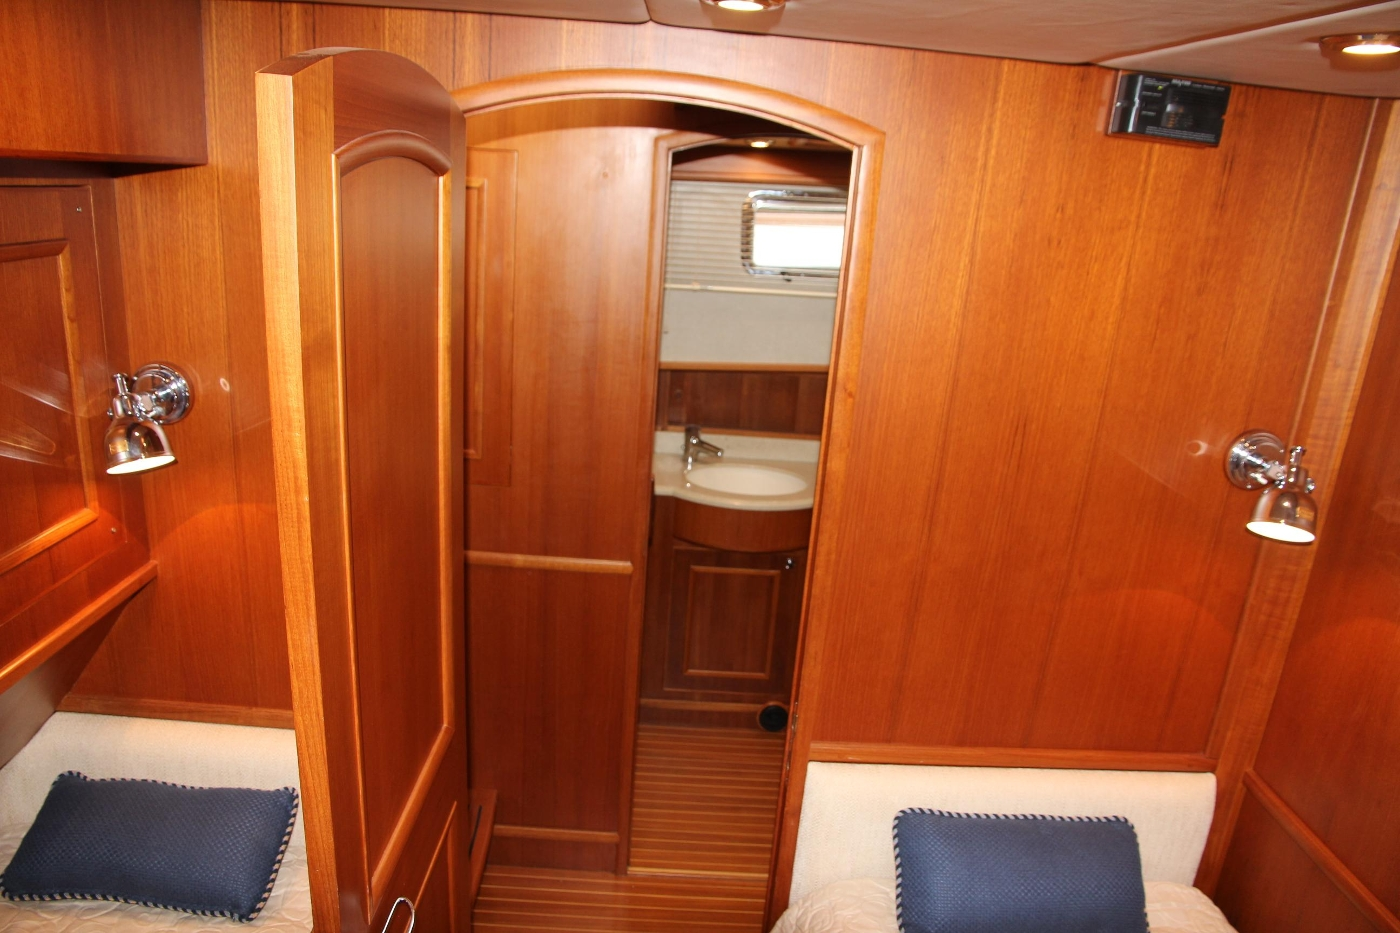 2009 Grand Banks 47 Europa, Guest Cabin Twin Berths